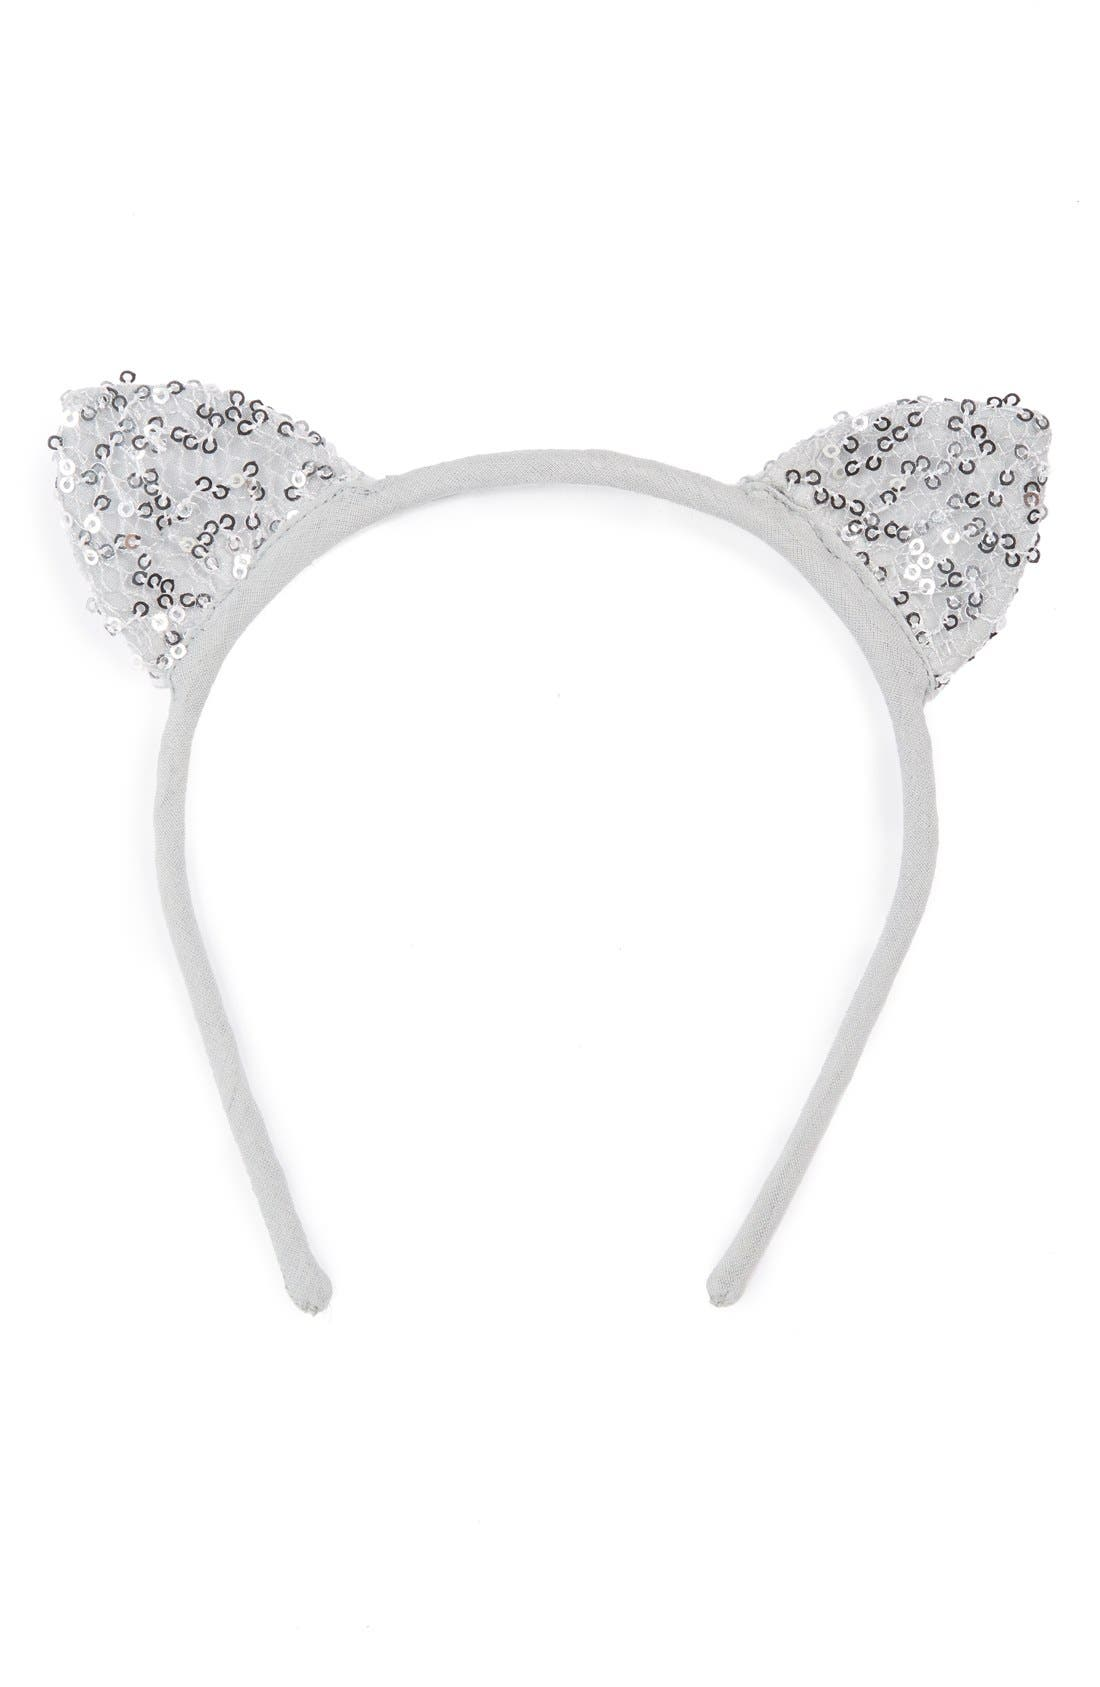 Meow'Sequin Headband,                             Main thumbnail 1, color,